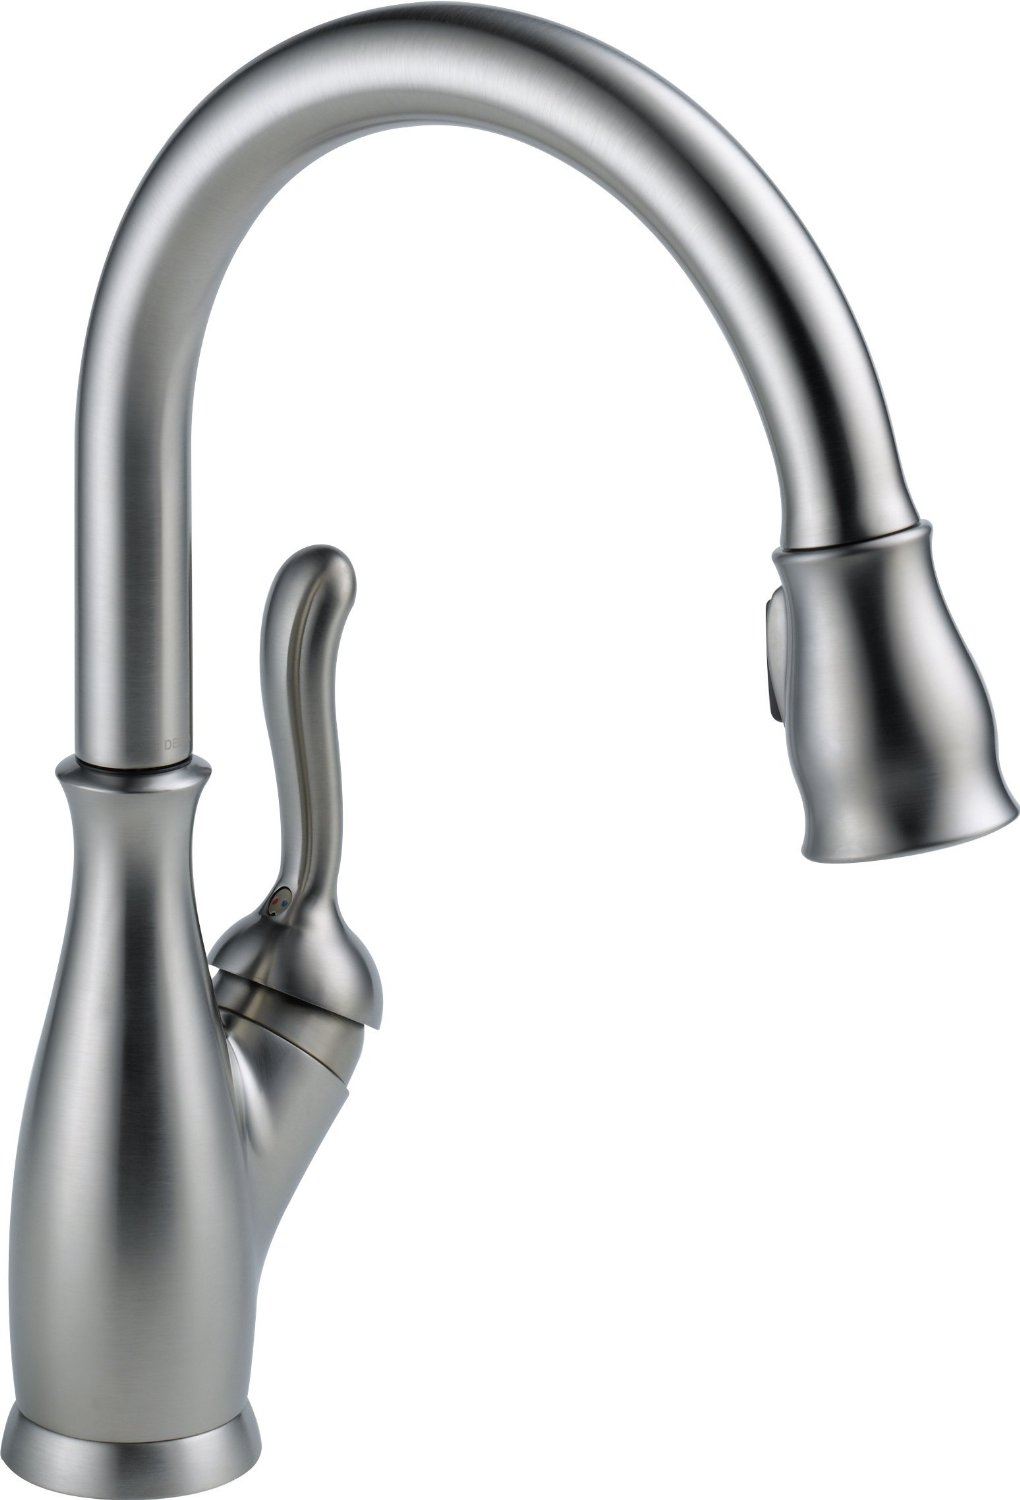 Ideas, kitchen outstanding kitchen faucets for modern kitchen faucet with dimensions 1020 x 1500  .